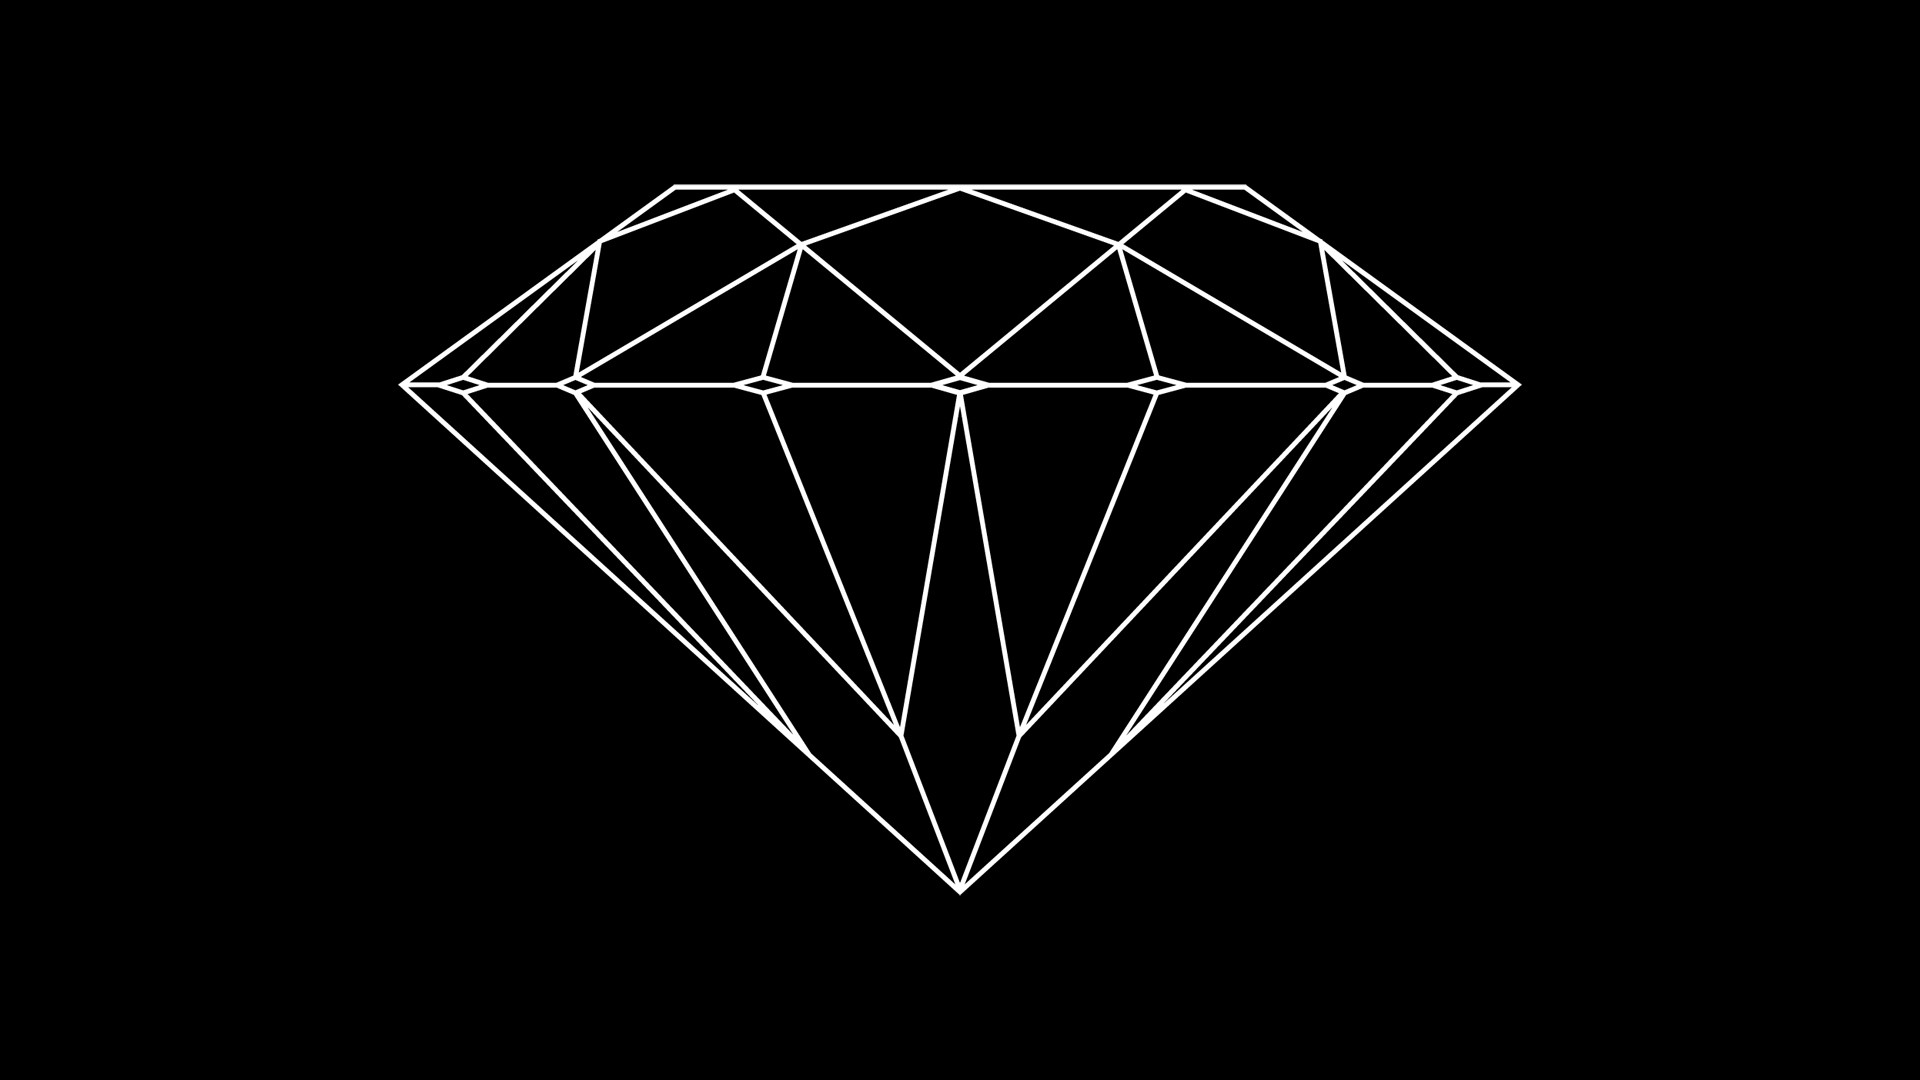 black and white diamond wallpaper 80 images